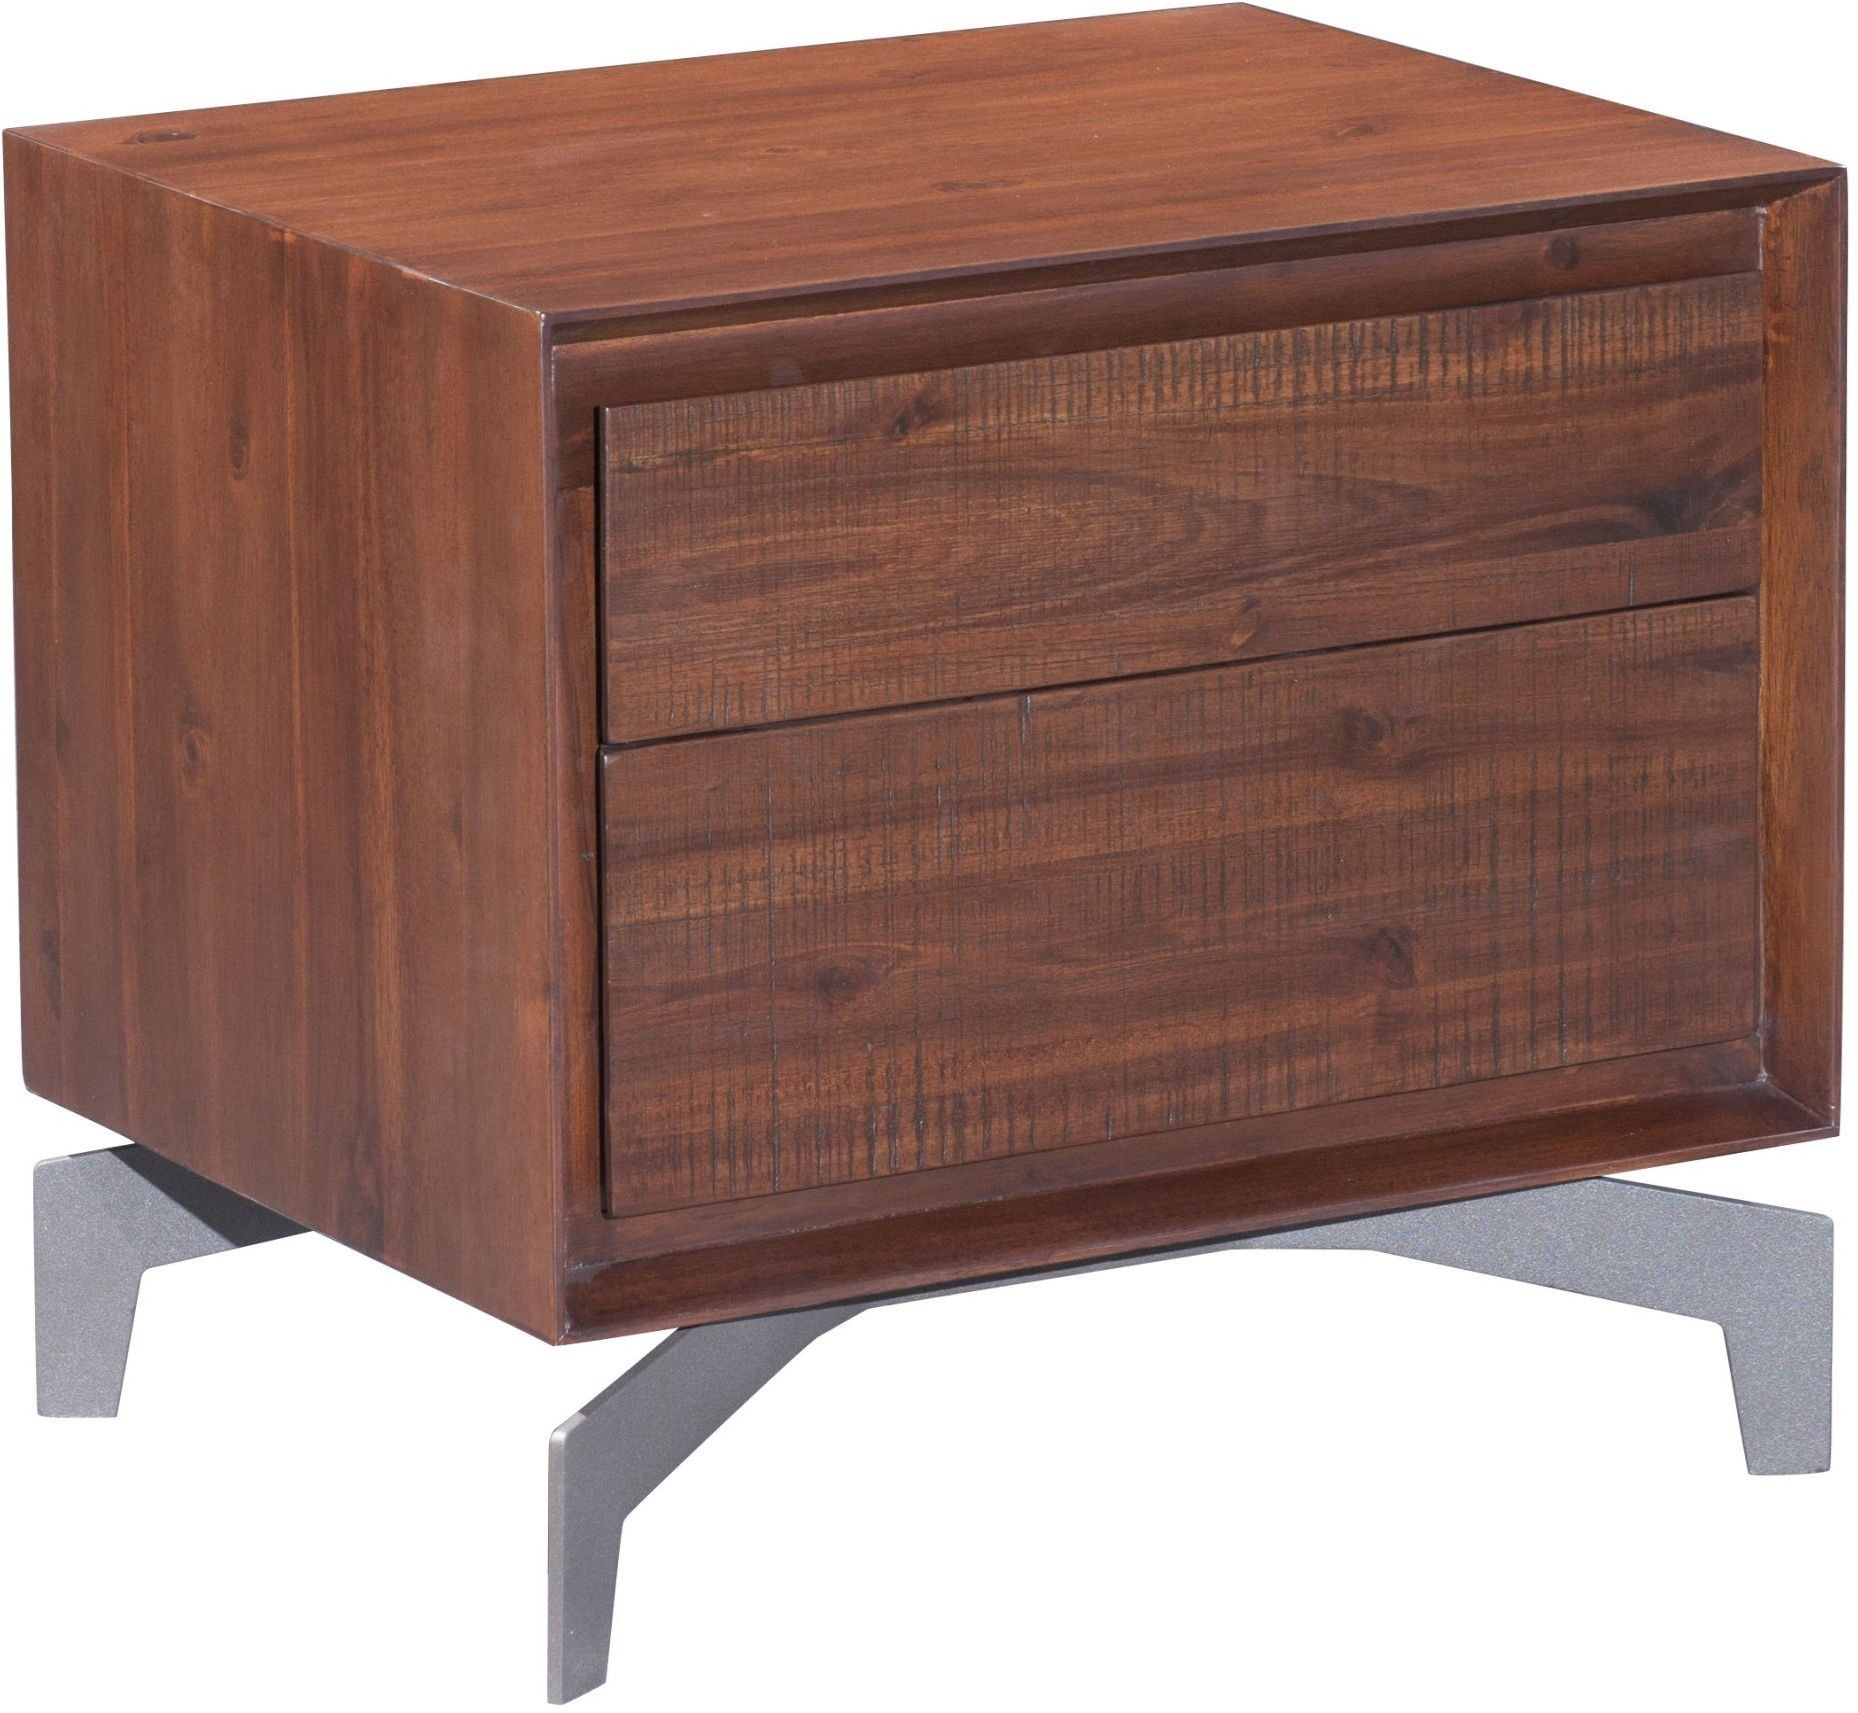 Free Furniture Perth Perth Chestnut End Table From Zuo Coleman Furniture